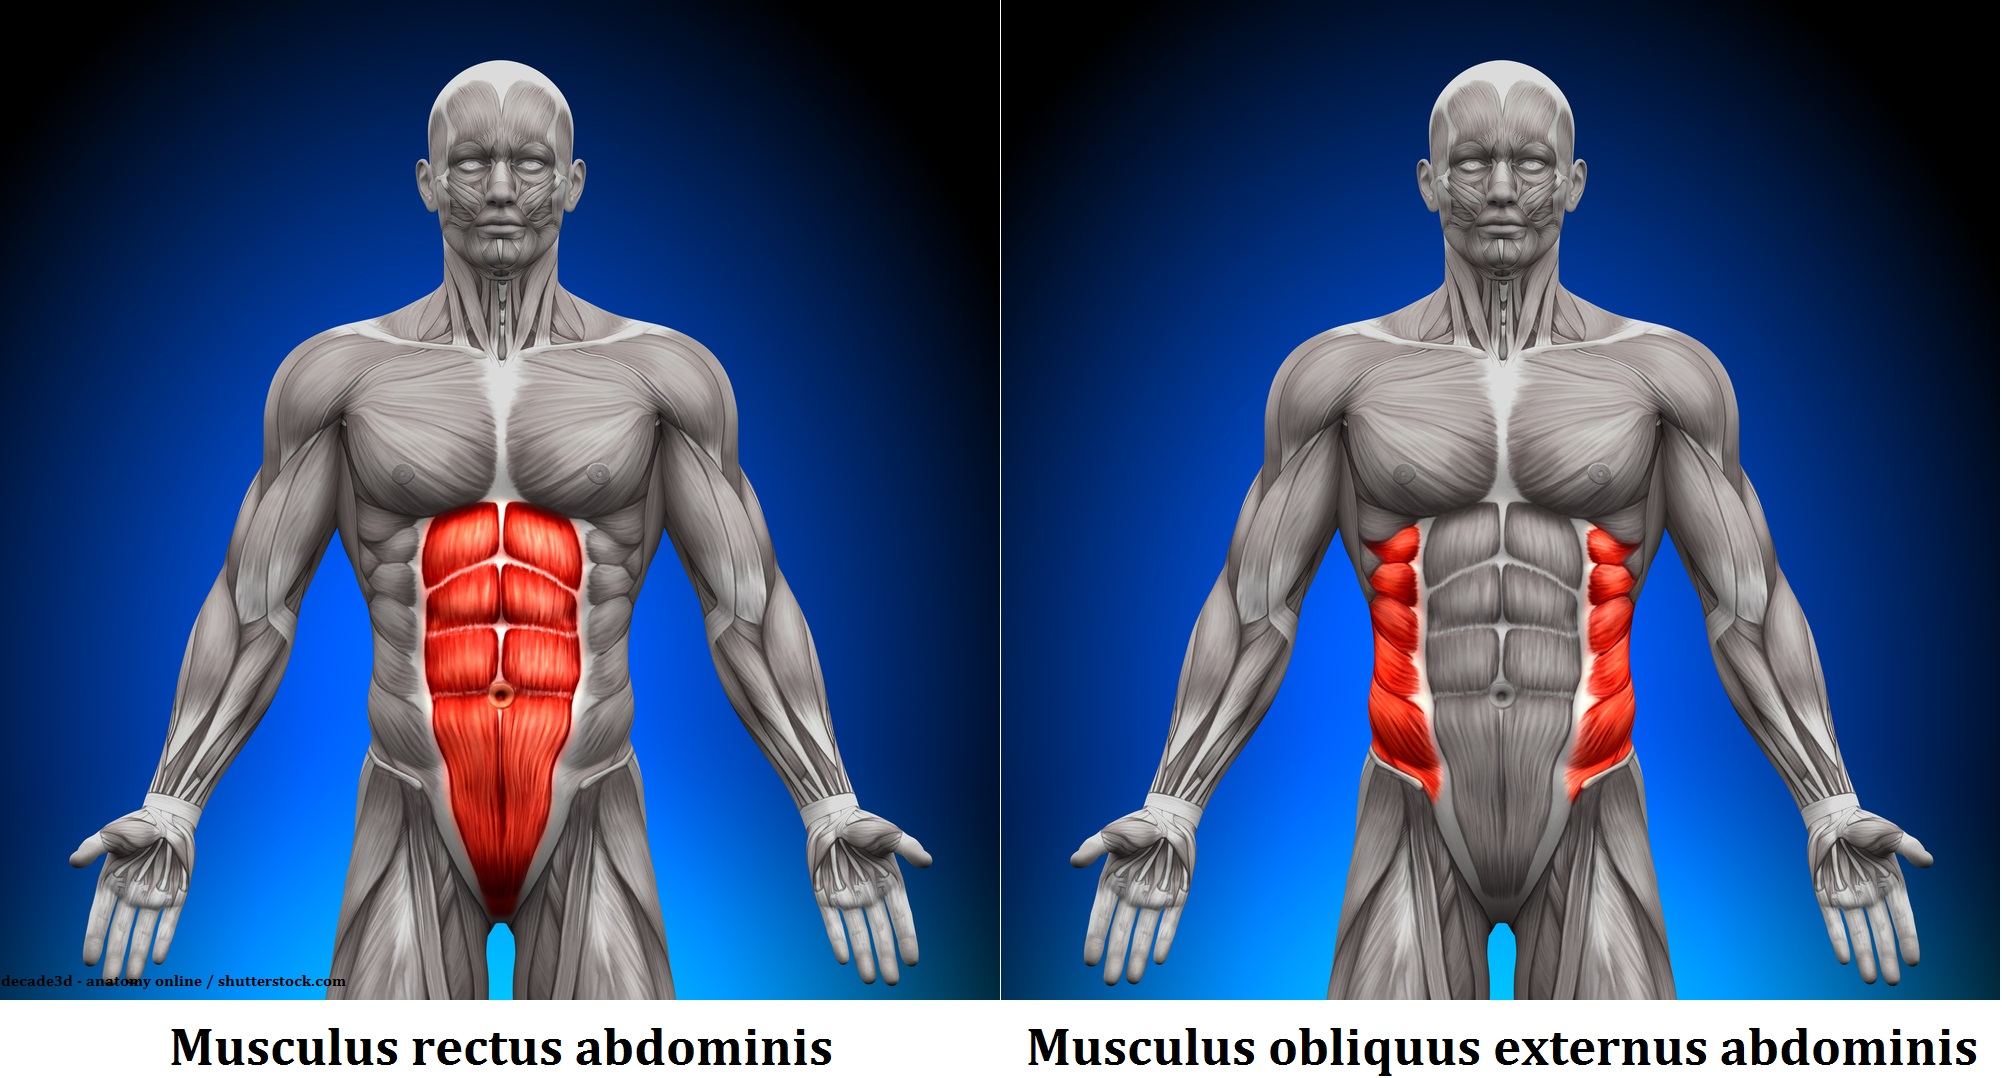 The abdominal muscles